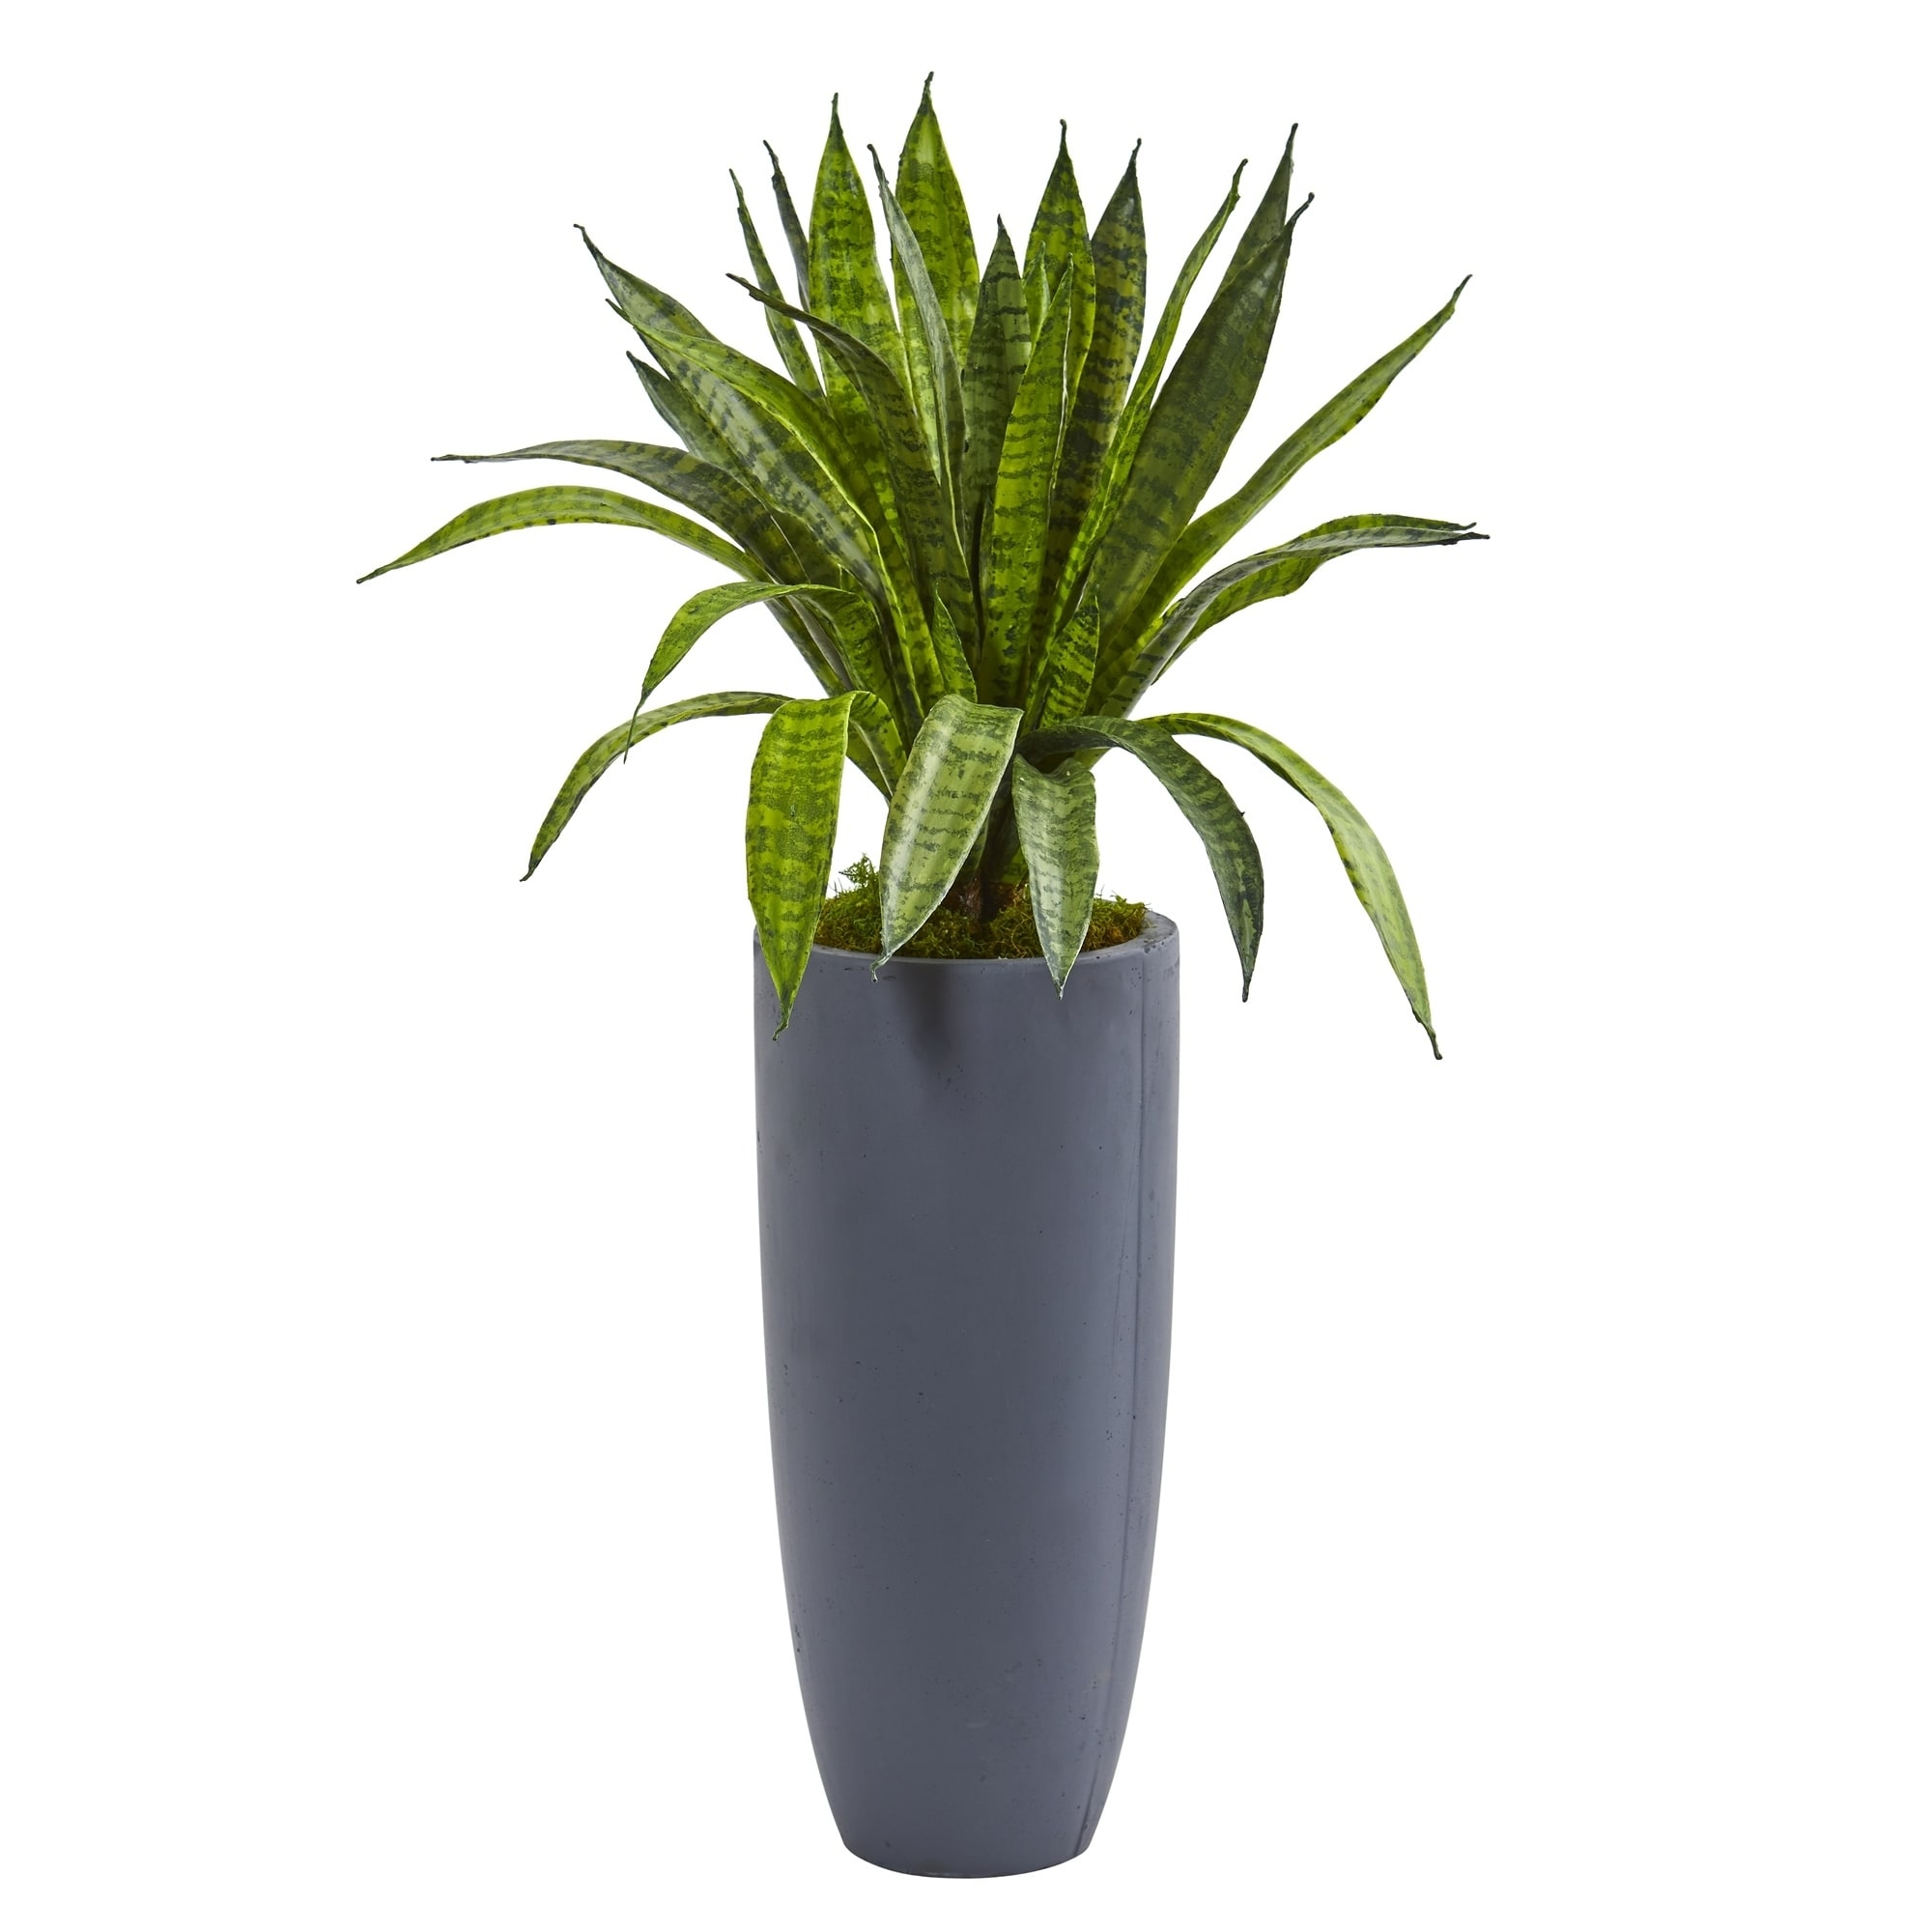 34 Sansevieria Artificial Plant in Gray Planter